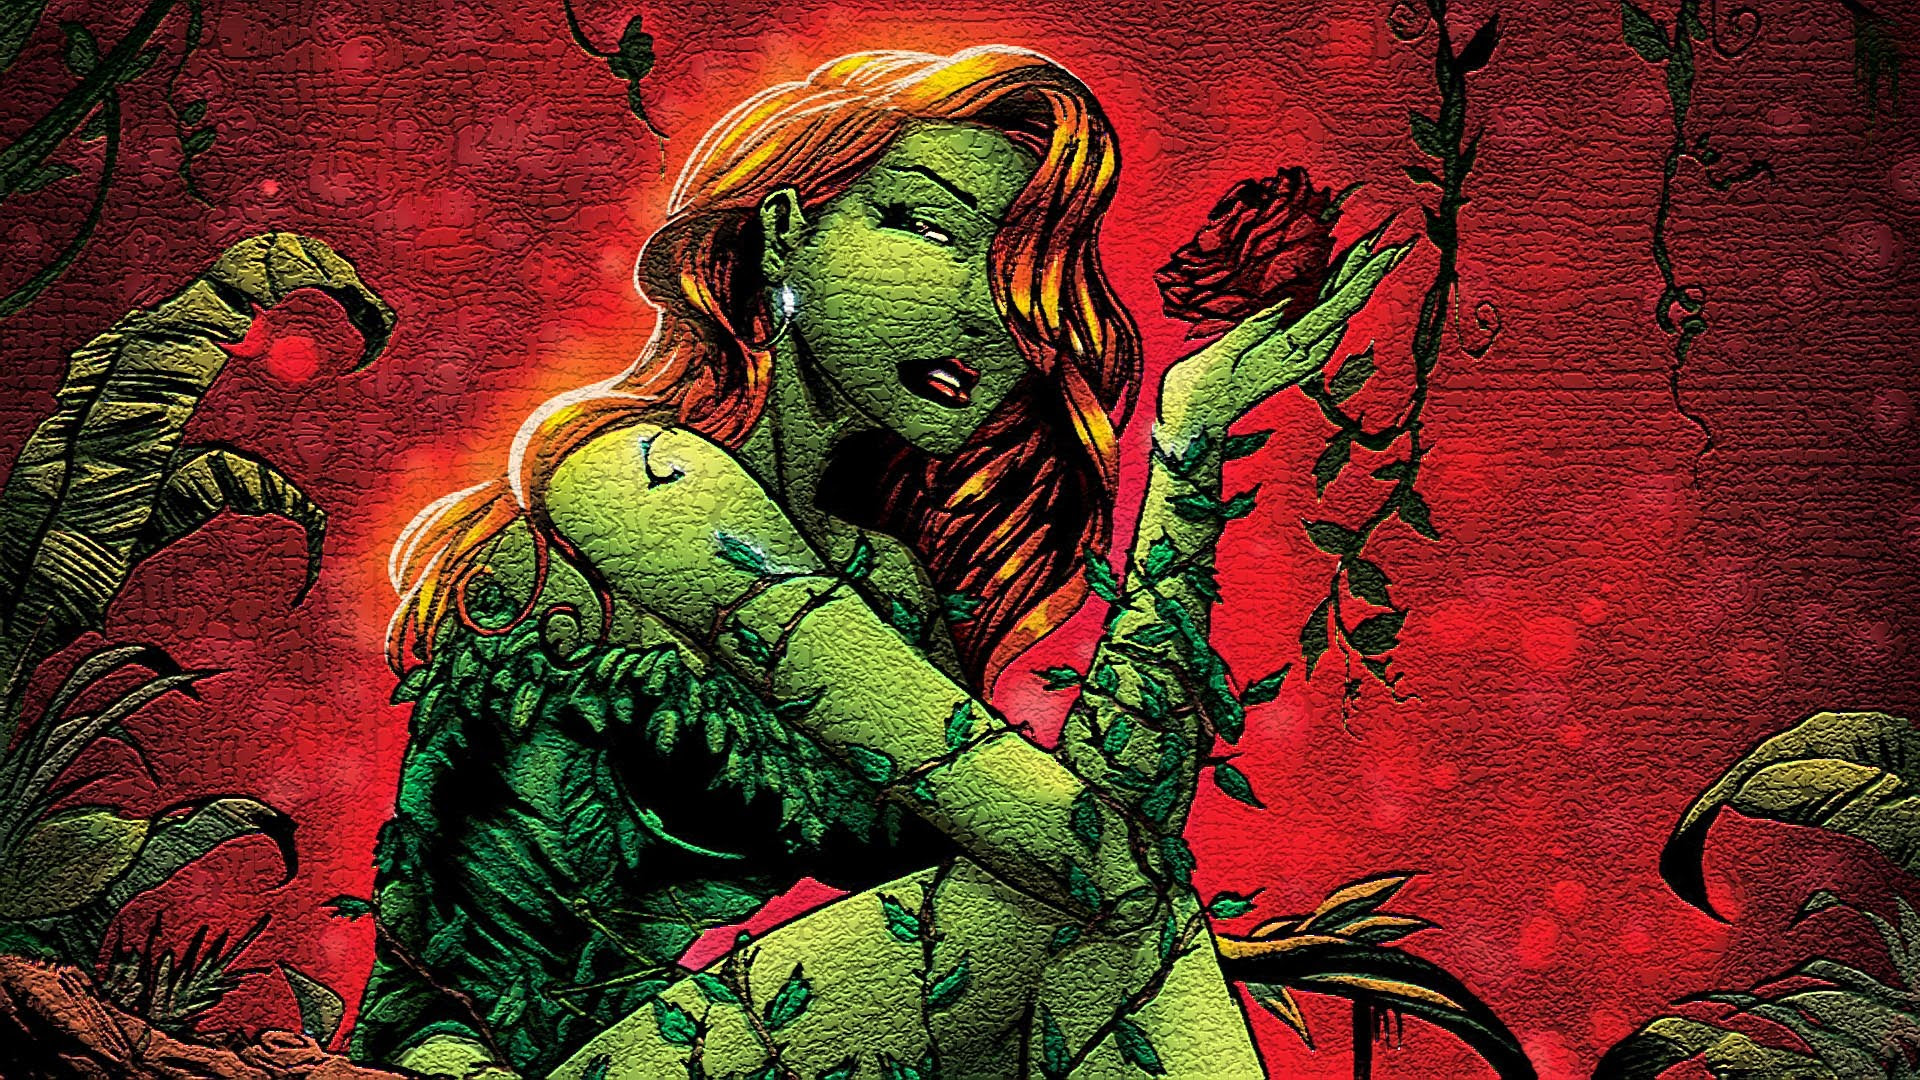 Poison Ivy Wallpaper Hd 74 Images